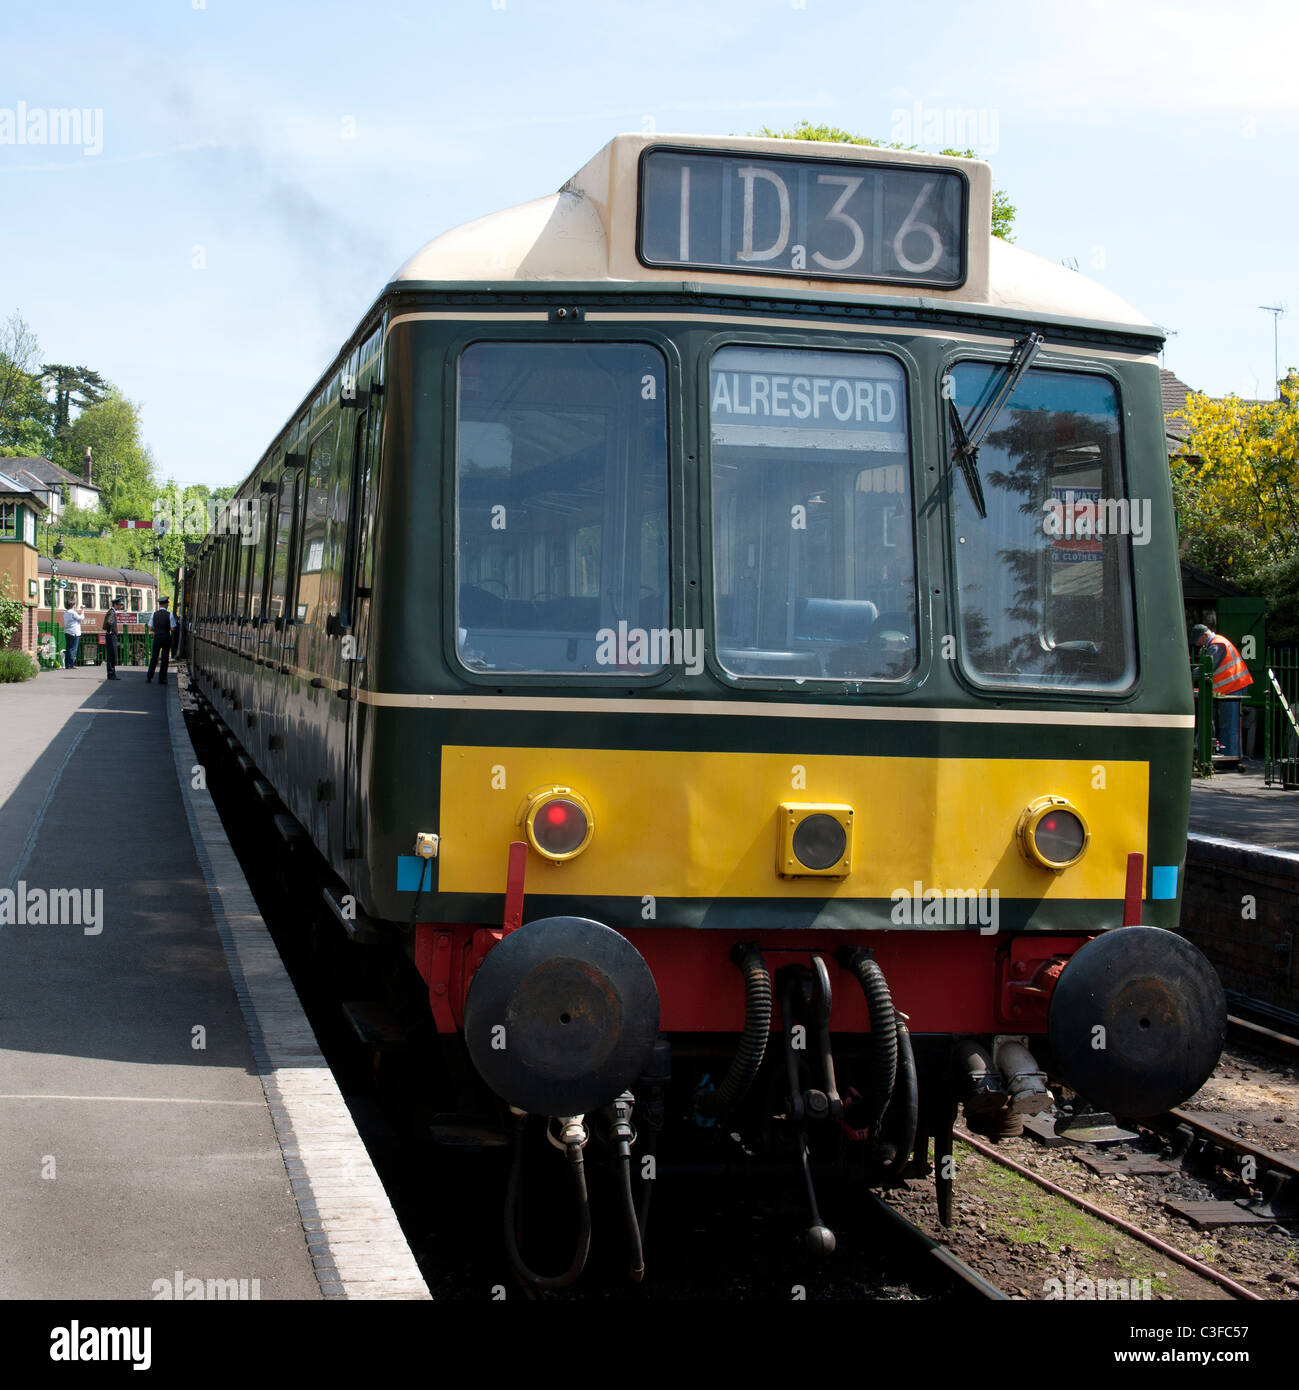 Vintage DMU Diesel unit at Alresford Railway Station, (Mid Hants Railway), Alresford, Hampshire, England, UK. - Stock Image